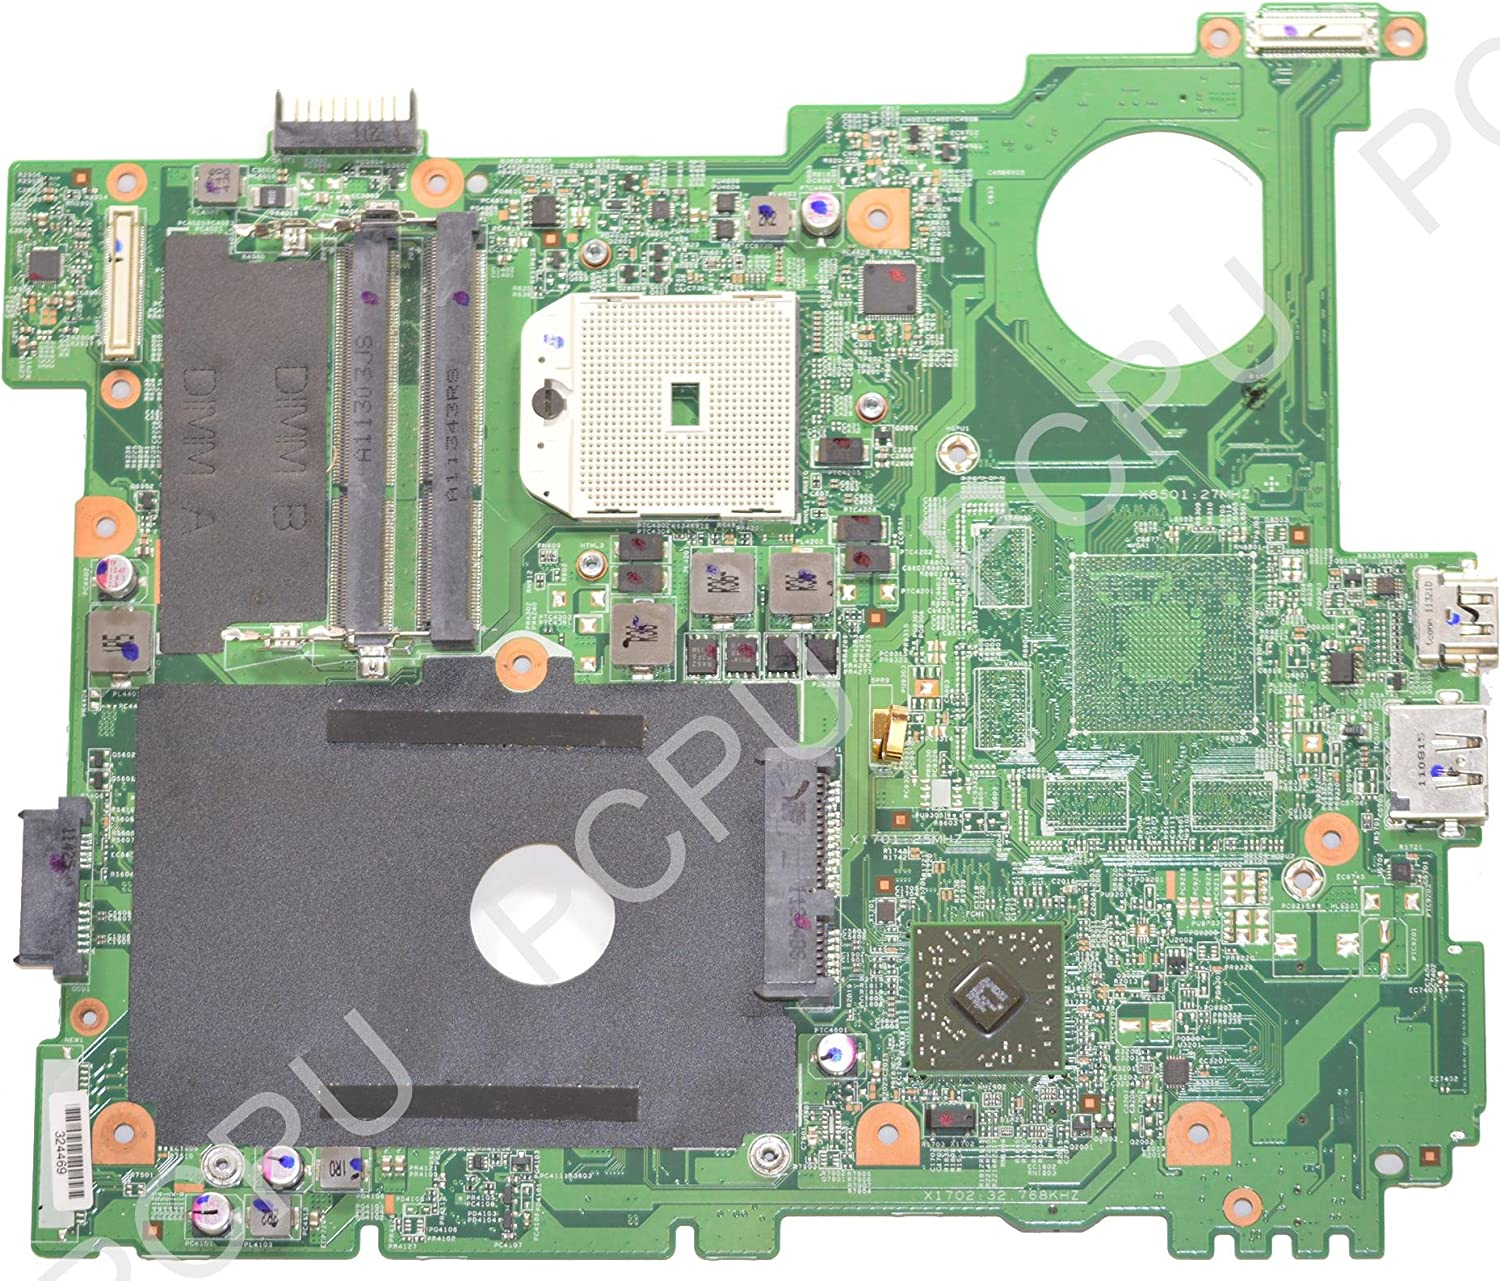 Dell Inspiron M5110 Series AMD Motherboard 48.4IE04.021 0NKG03 NKG03